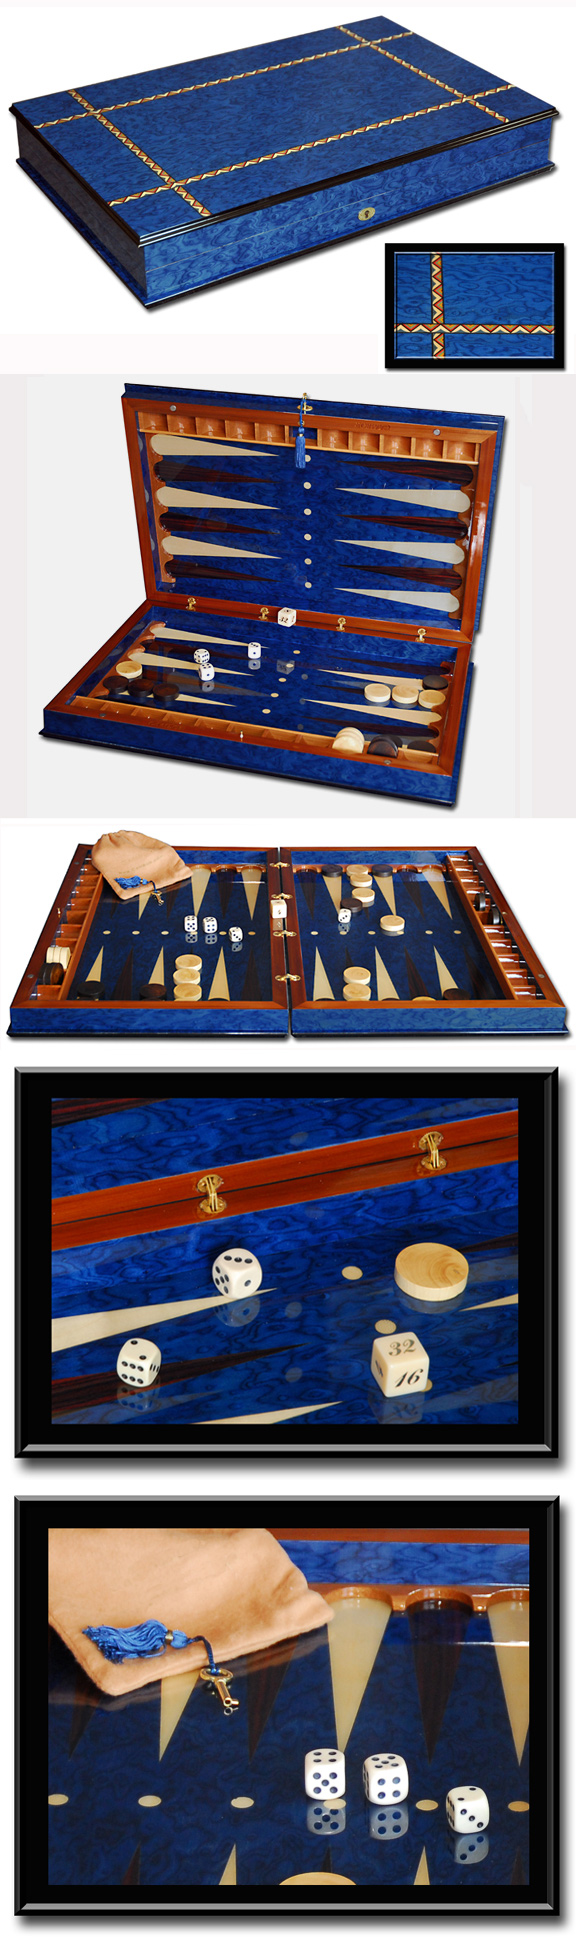 Blue Sorrento Backgammon Set